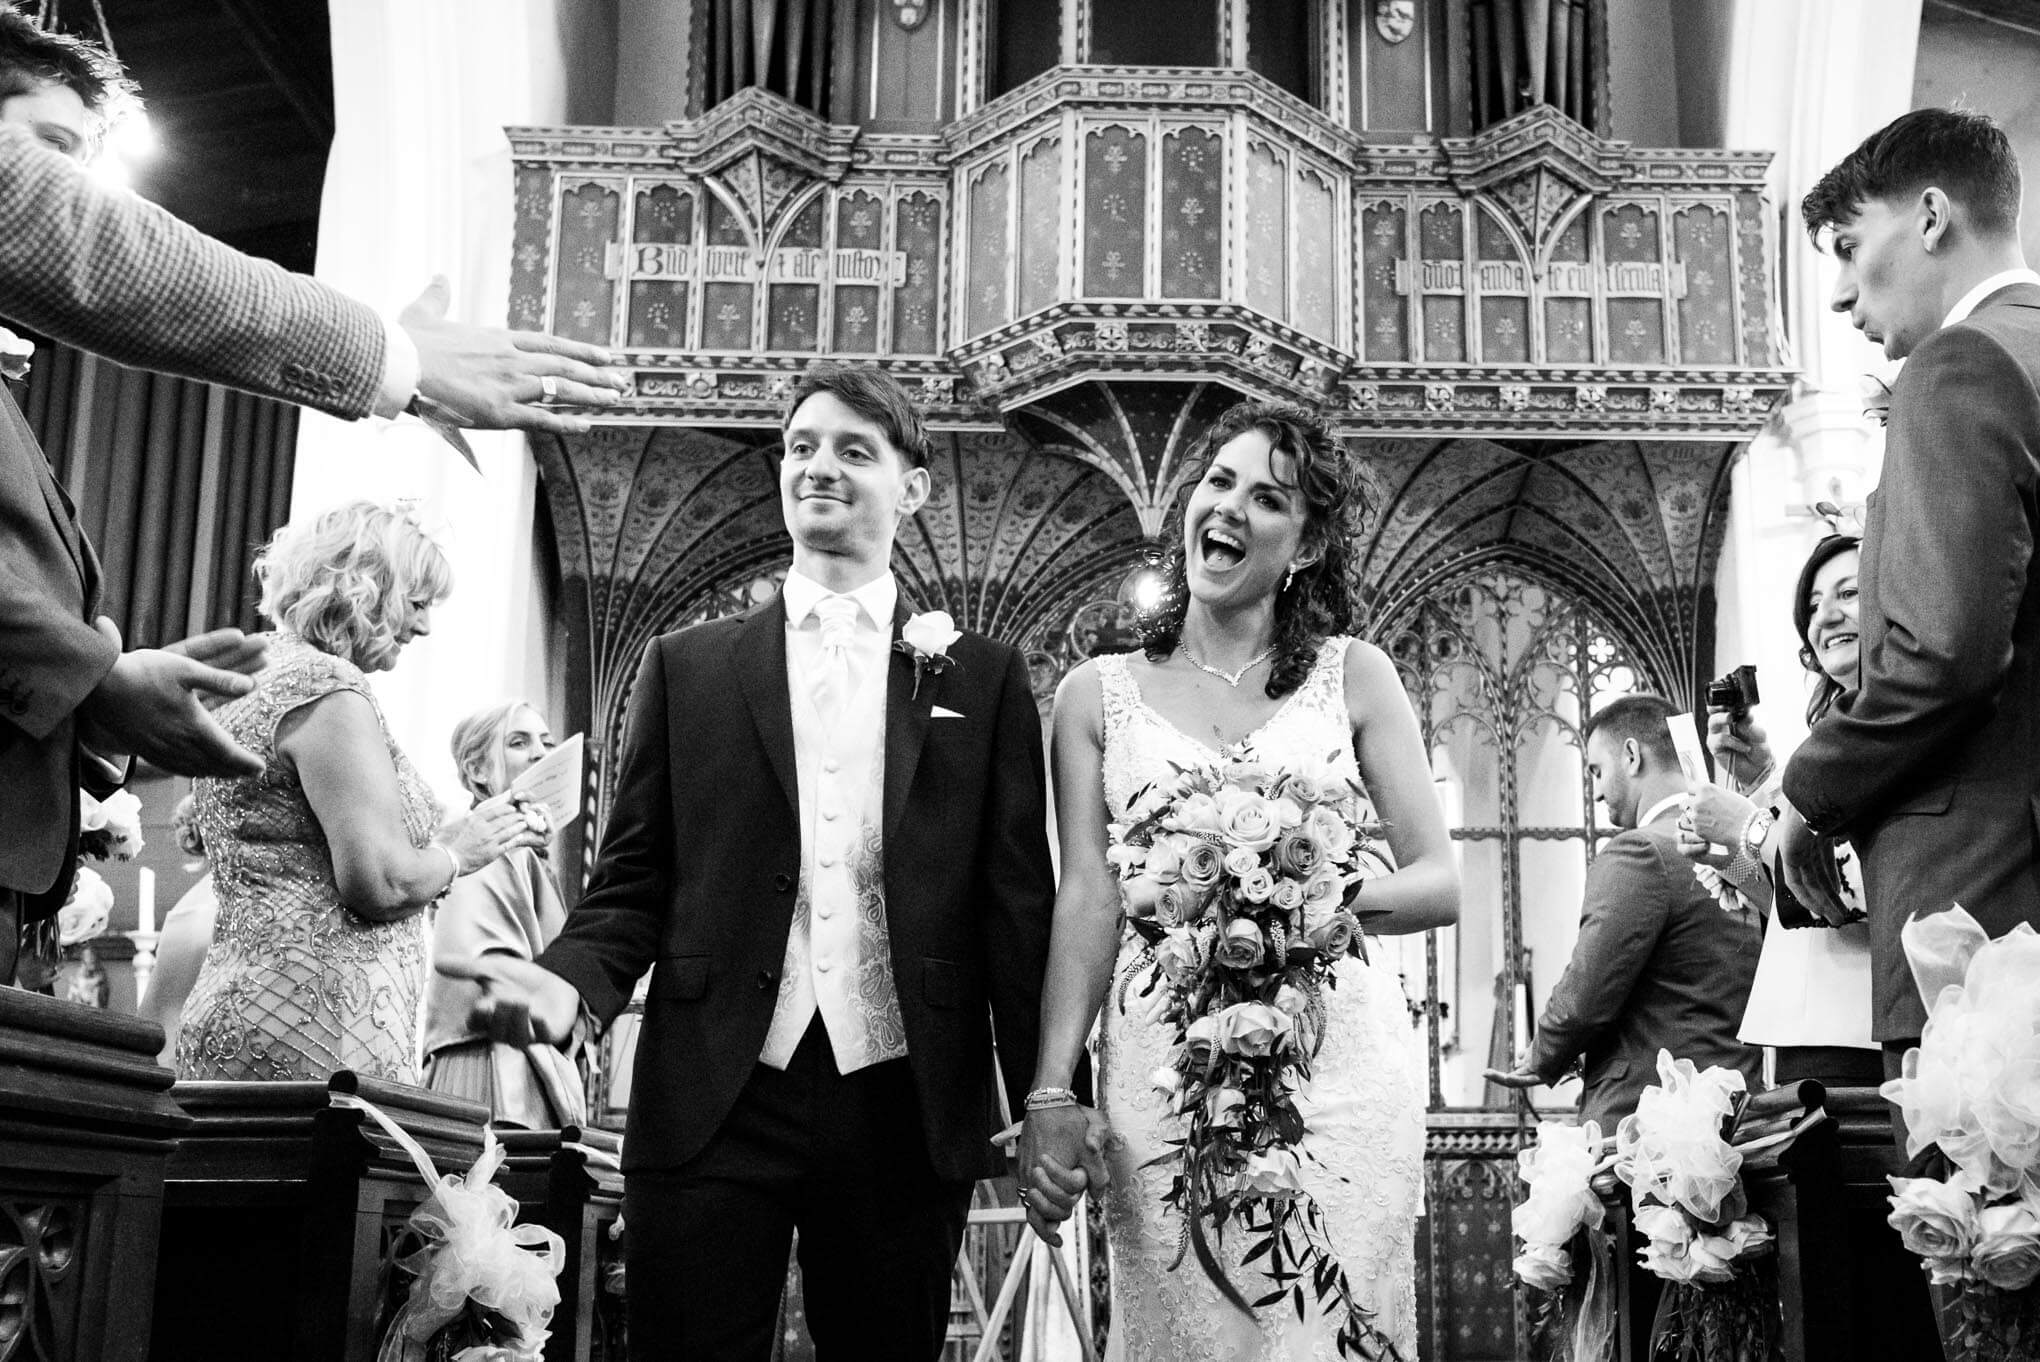 All Saints Parish Church, All Saints Parish Church wedding, All Saints Parish Church wedding photographer, All Saints Parish Church wedding photography, Cambridge wedding photographer, Cambridge wedding photography, chippenham wedding, chippenham wedding photographer, chippenham wedding photography, festival wedding Cambridge, Festival wedding photographer, London wedding photographer, London wedding photography, Rosewood Pavilion Chippenham